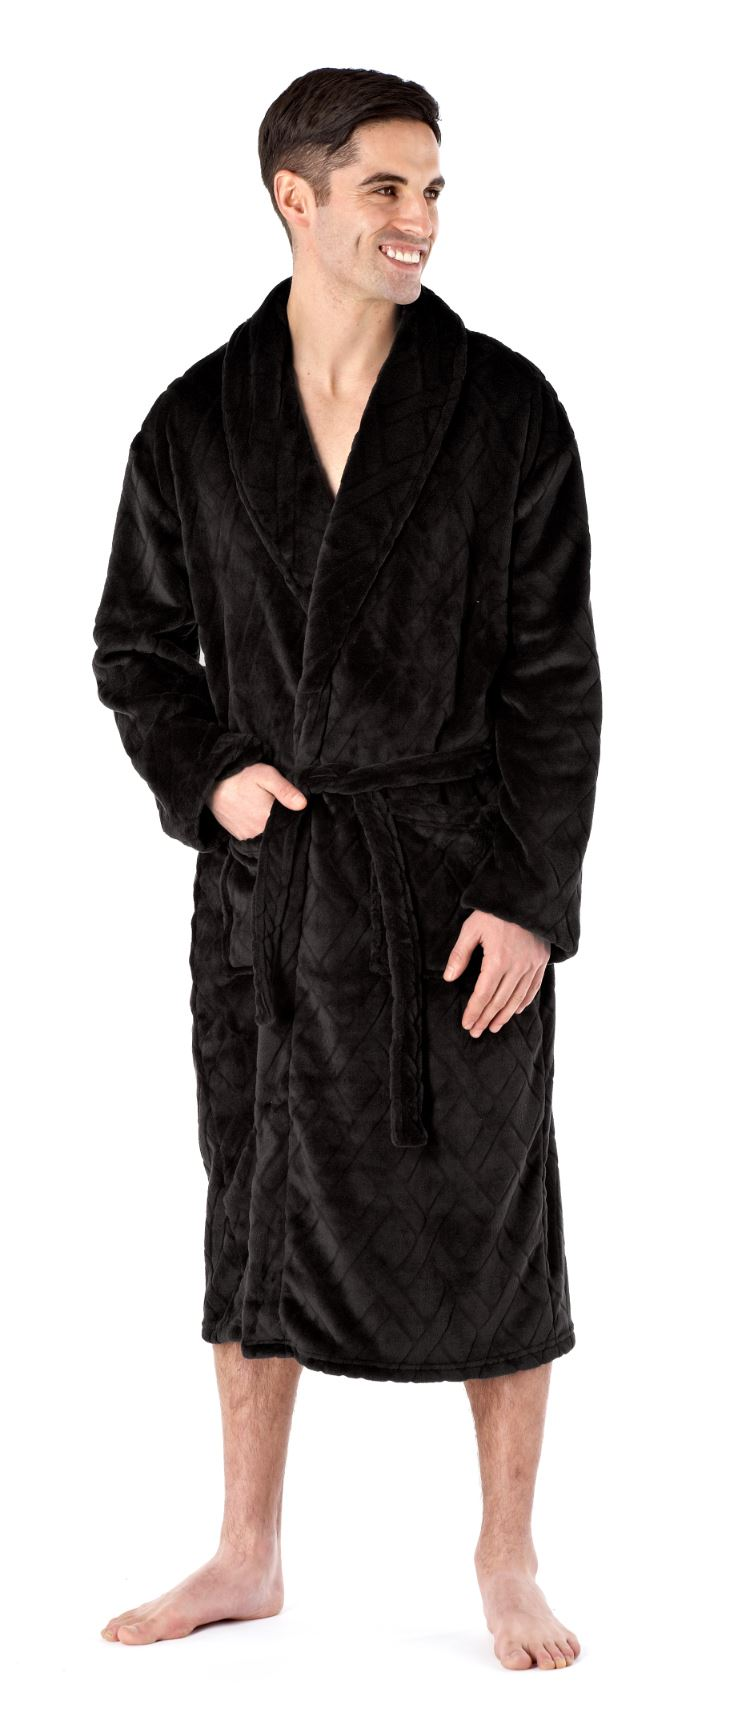 Our men's robe selection is some of the warmest, most comfortable and coziest sleepwear available. Shop different materials like fleece, chamois or flannel robes, plus hooded robes ideal for that extra bit of warmth come winter.